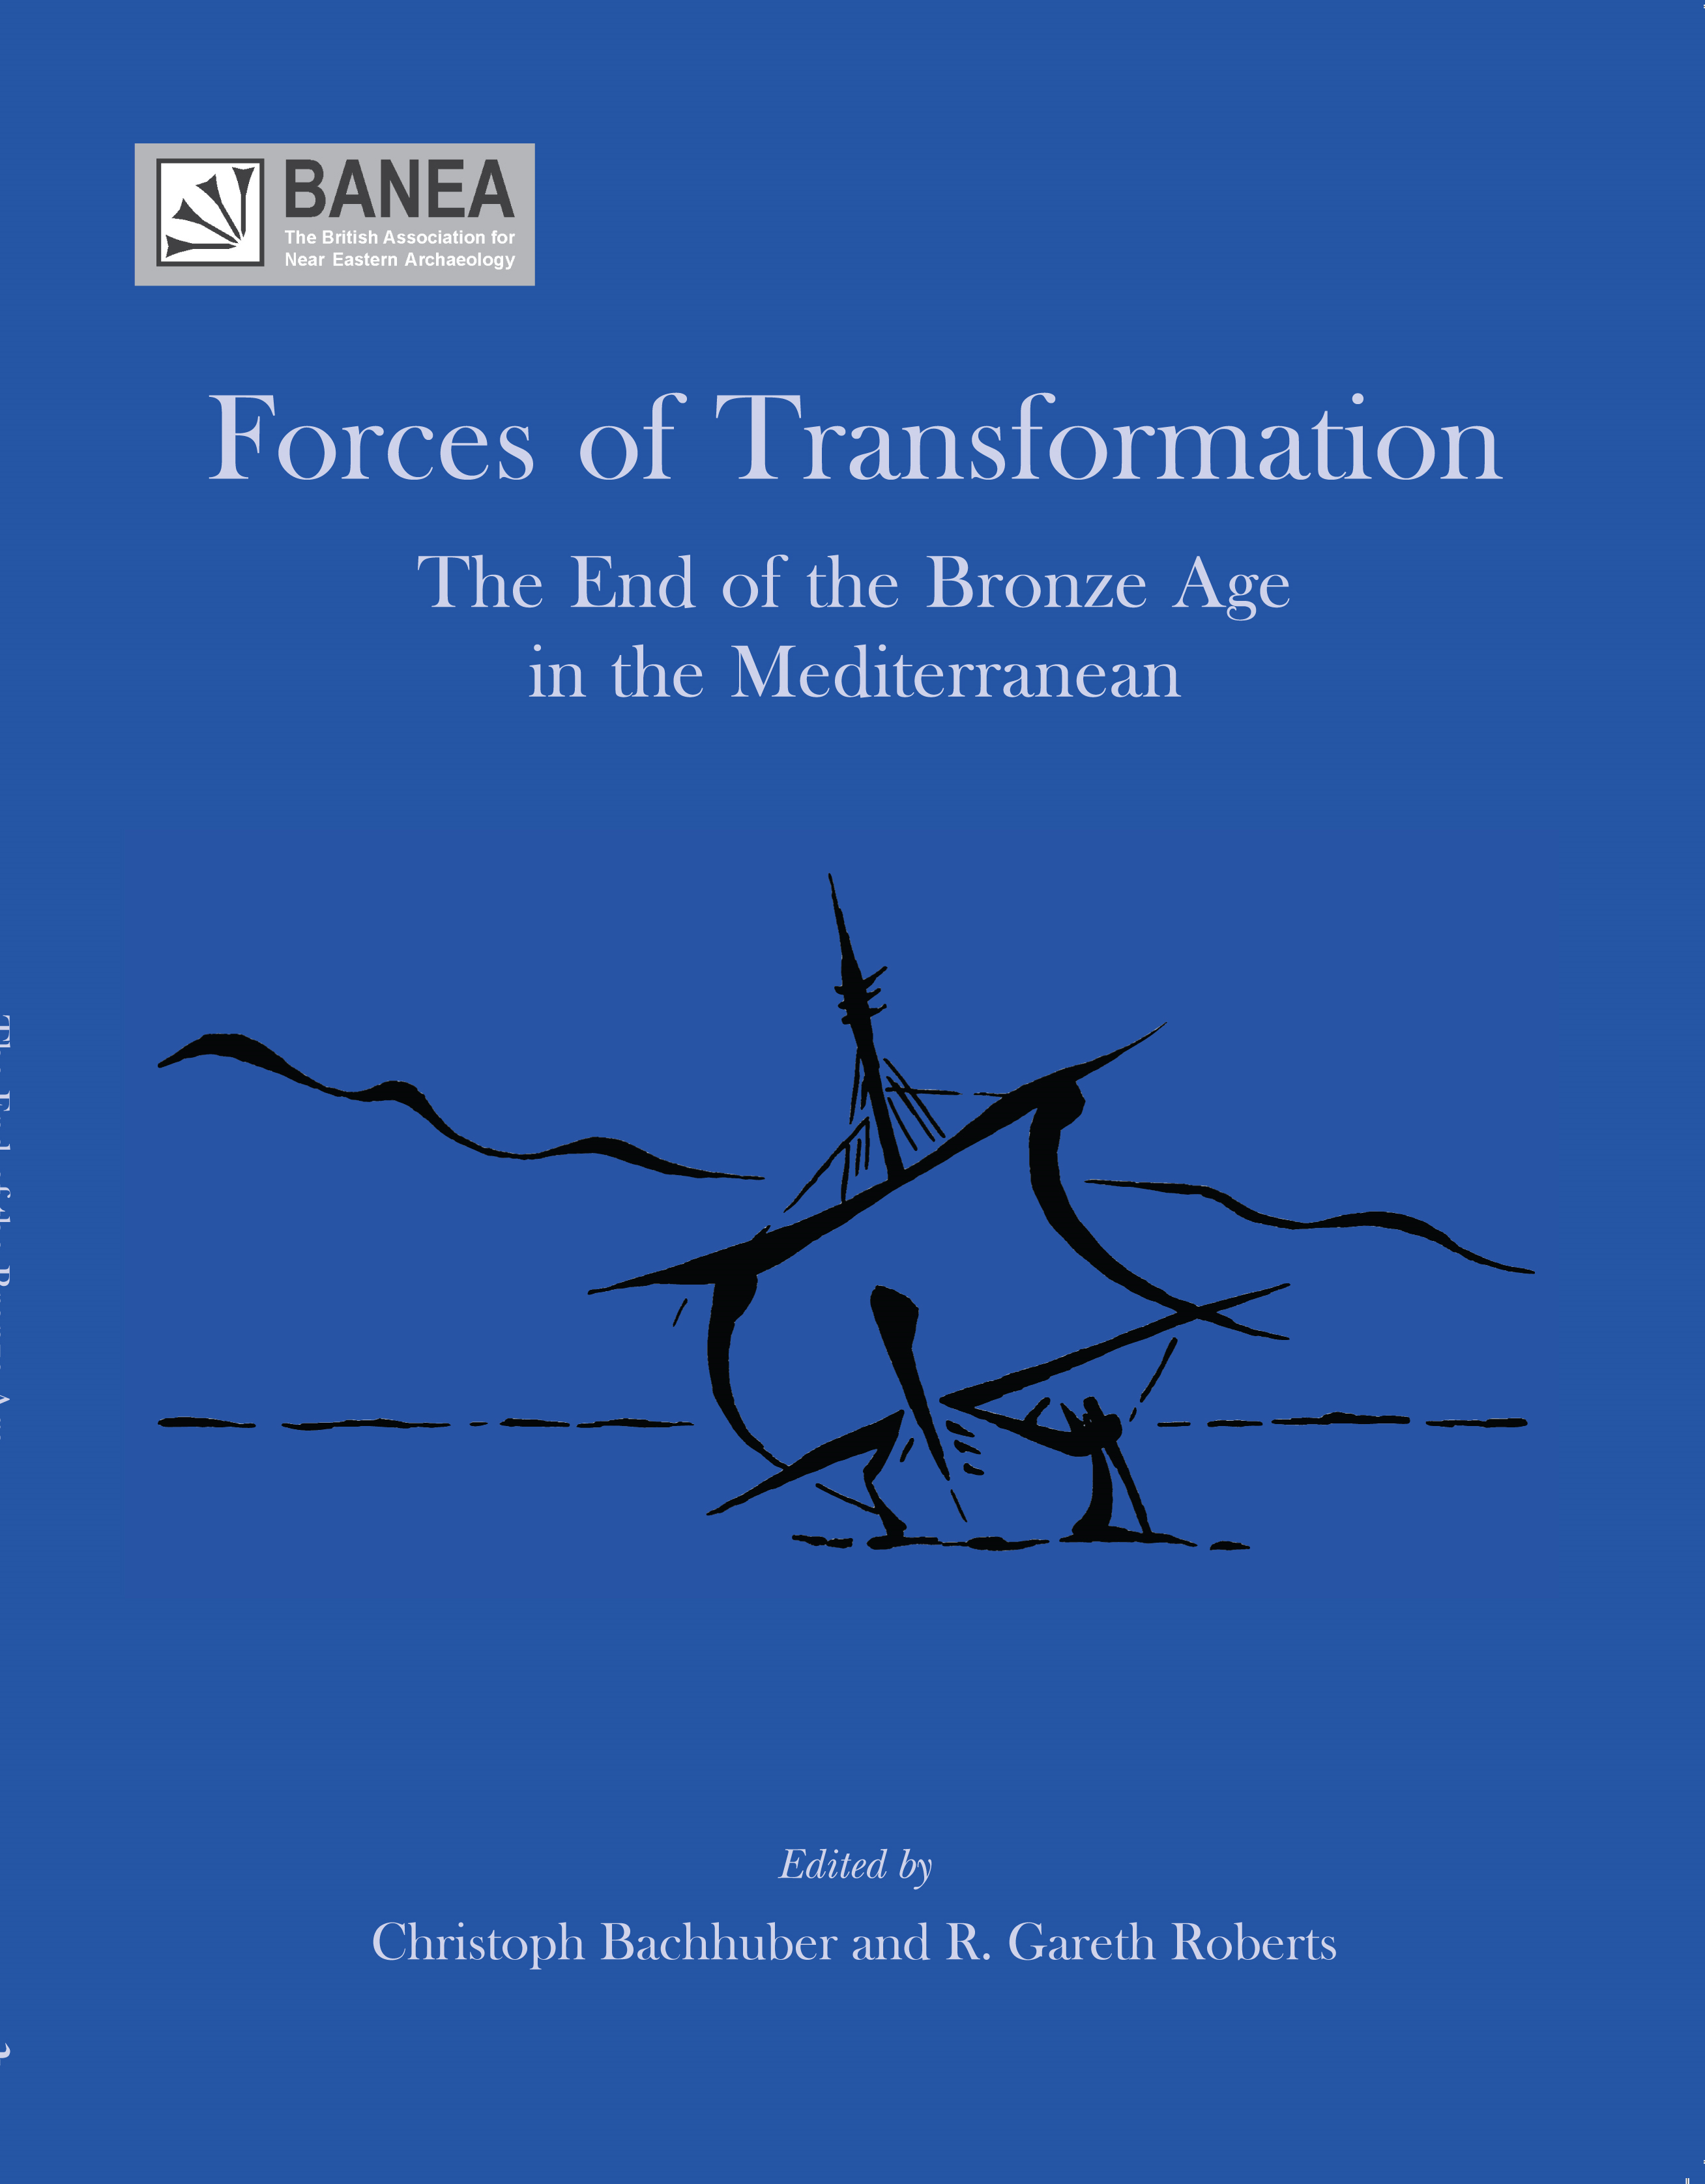 Forces of Transformation